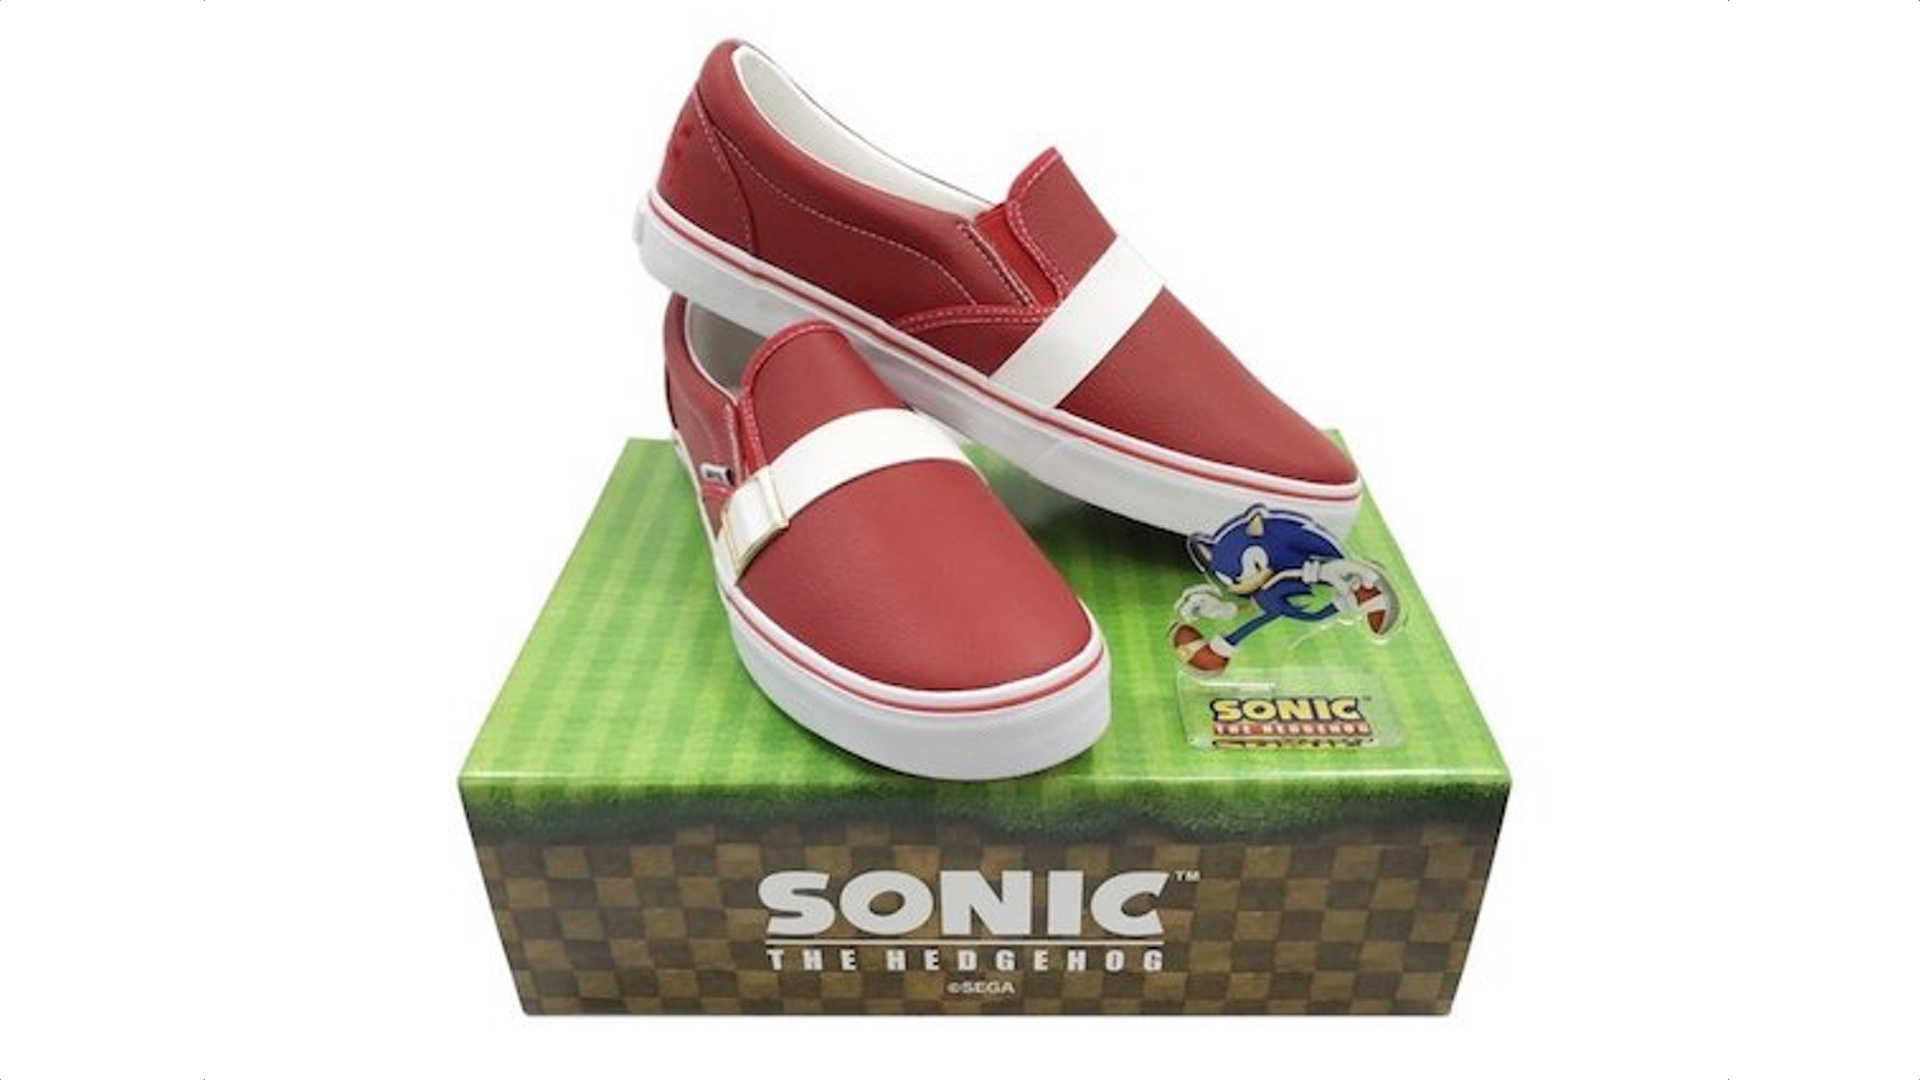 612919f0399fda show-off-your-sonic-the-hedgehog-fandom-with-. Have you ever wanted to own  ...